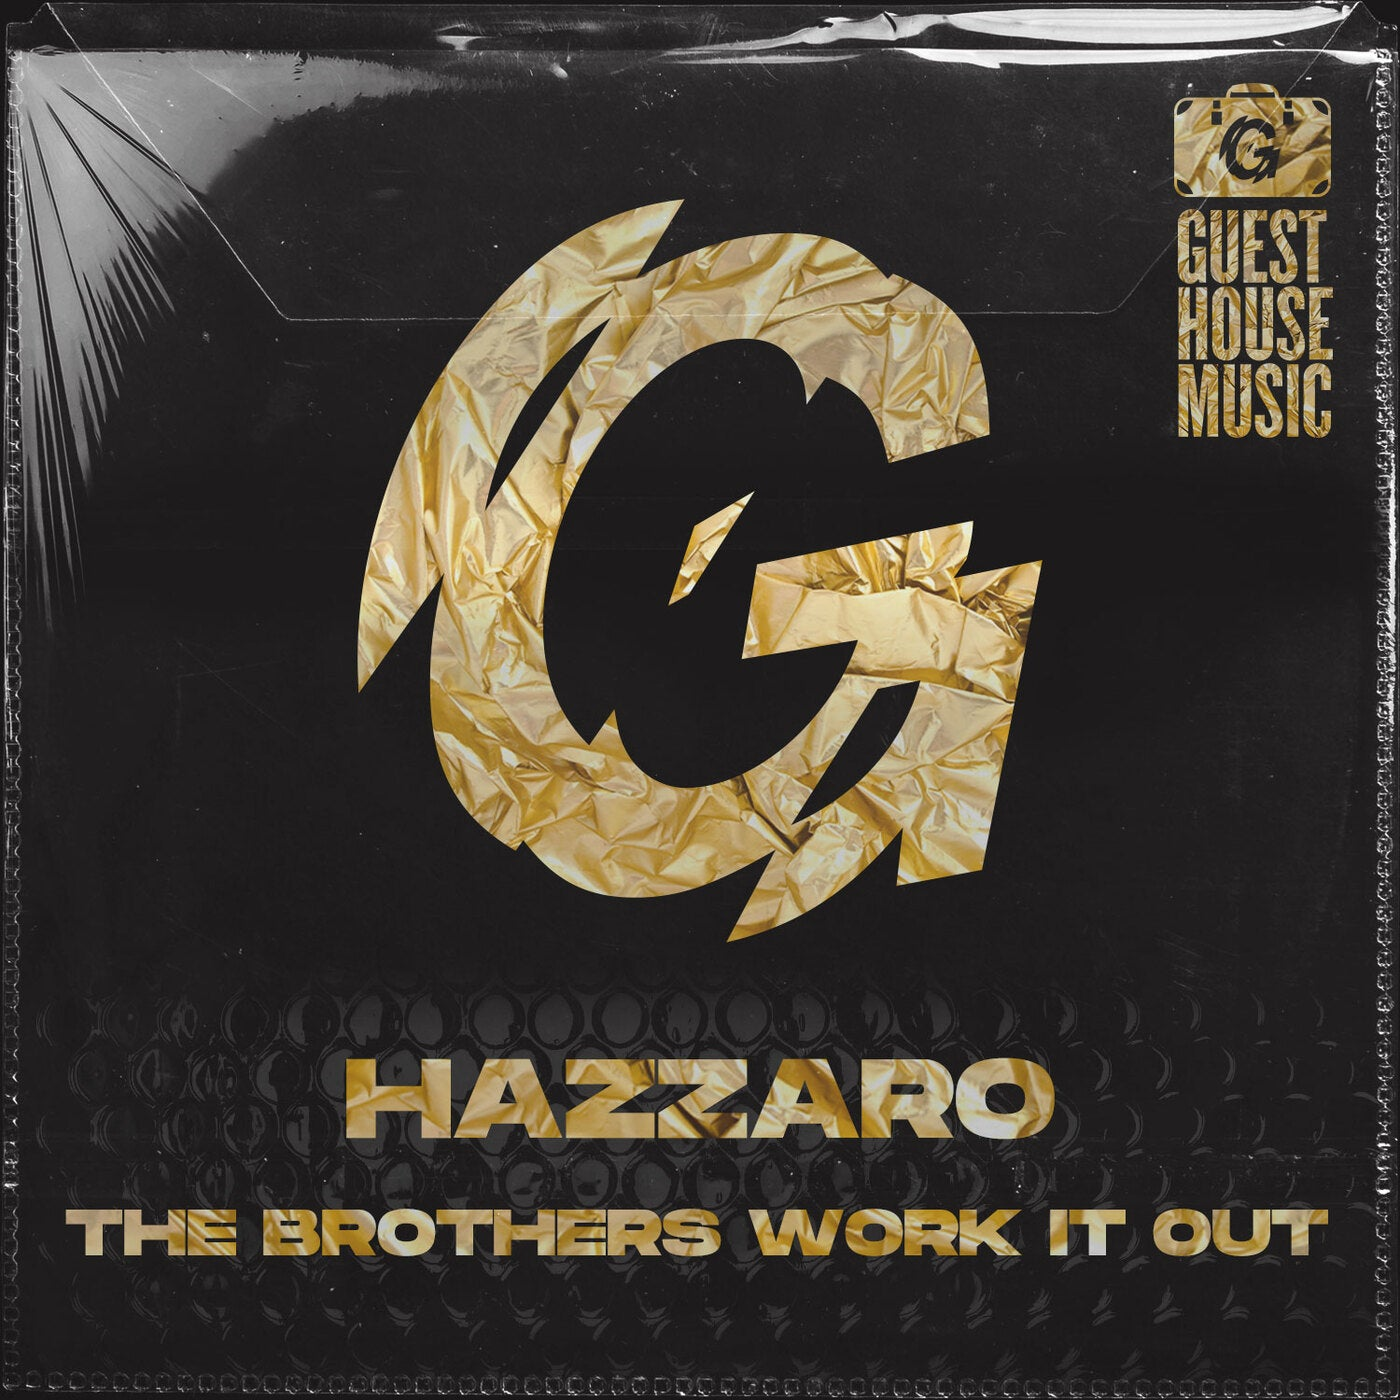 The Brothers Work it Out (Original Mix)